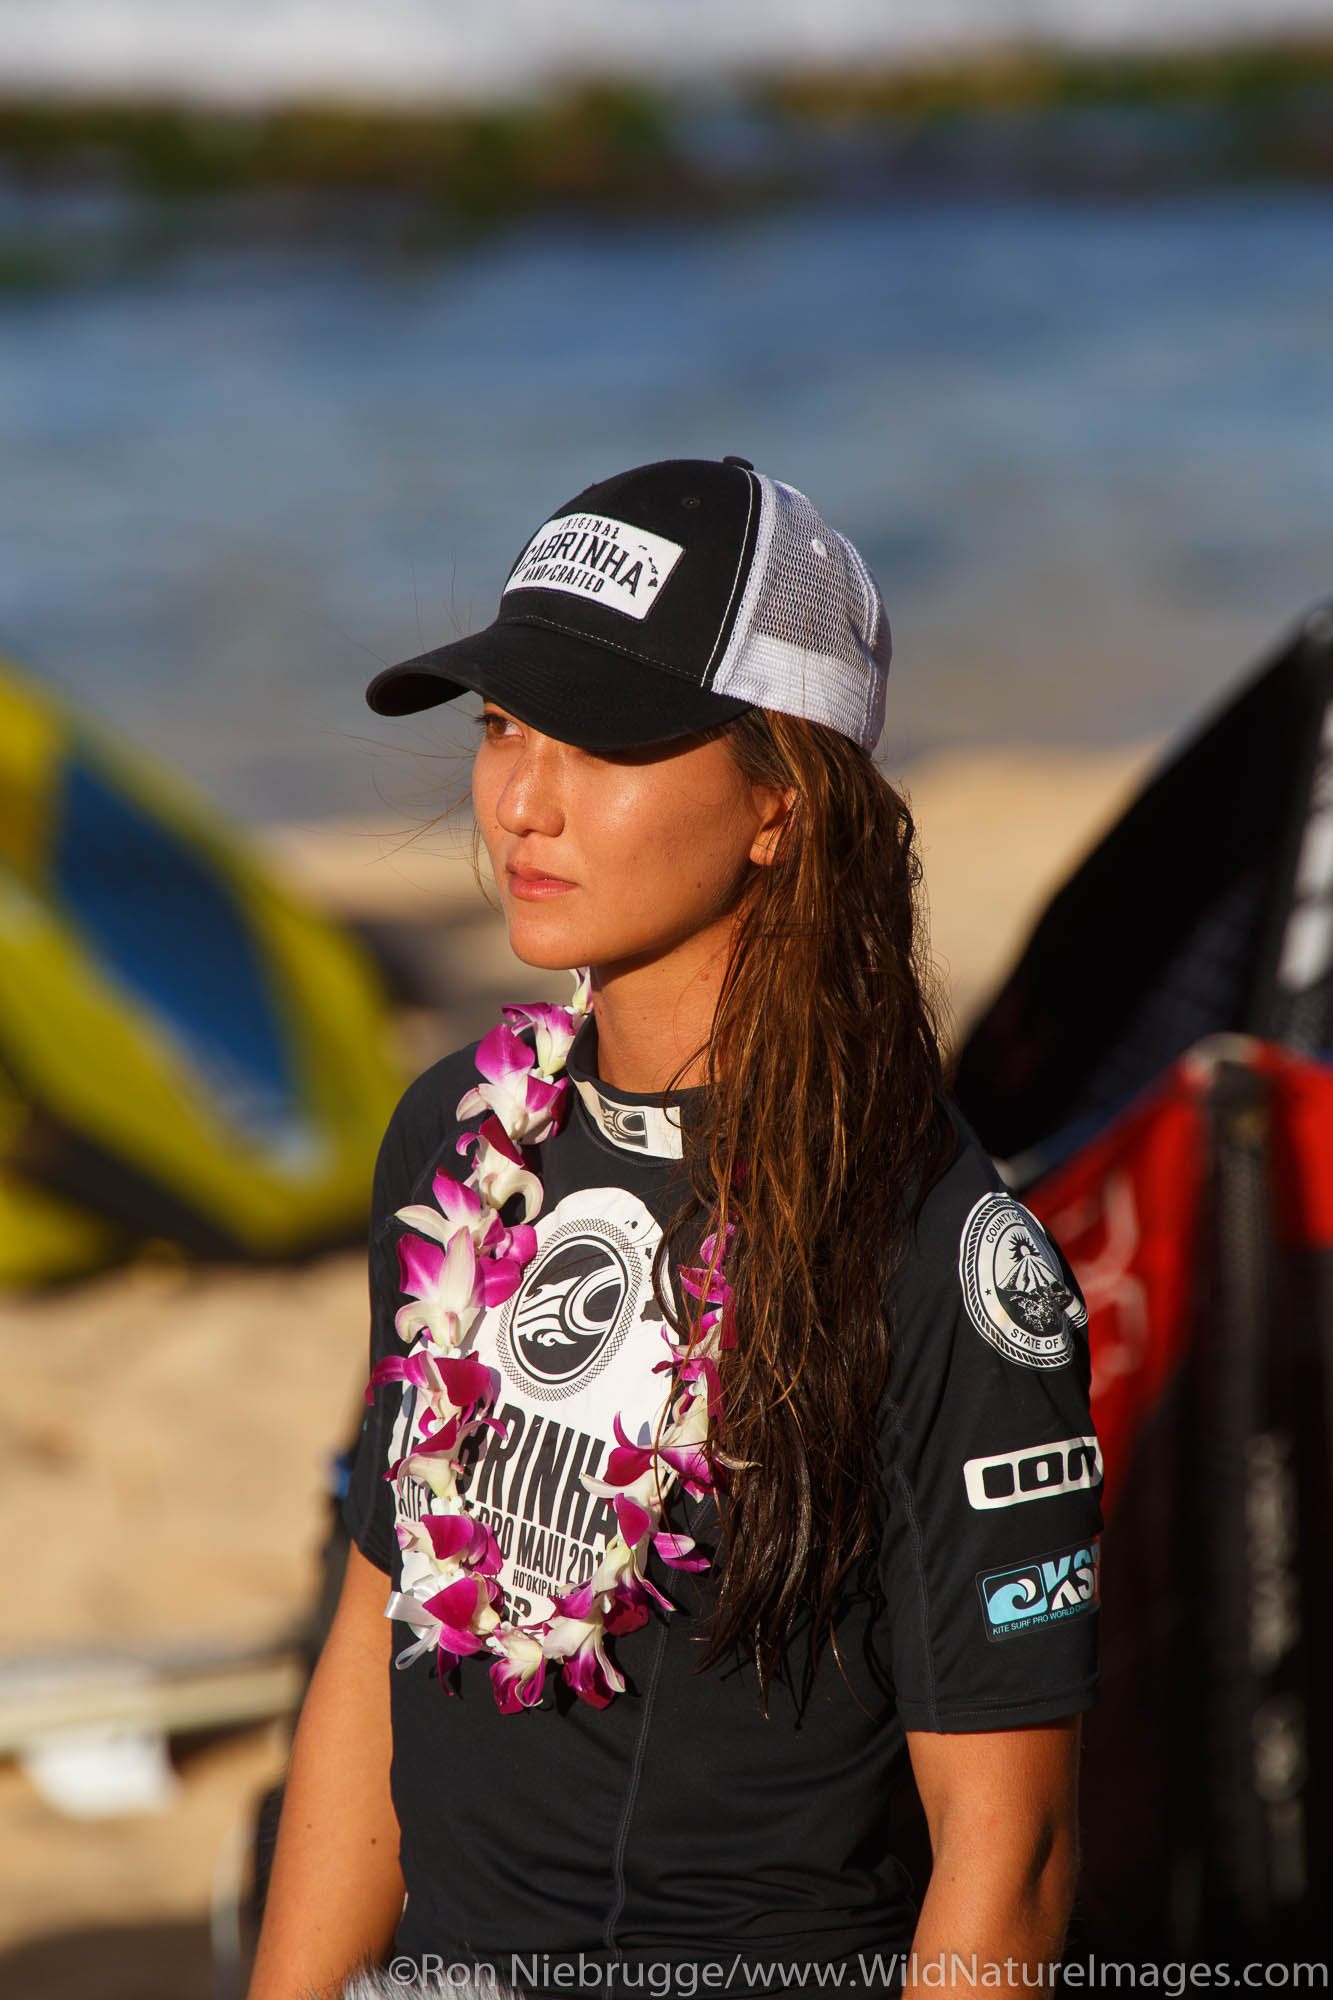 Moona Whyte who was crowned world champion at the 2013 Kite Surf Pro World Championships held nearby at Ho'okipa Beach, Maui...